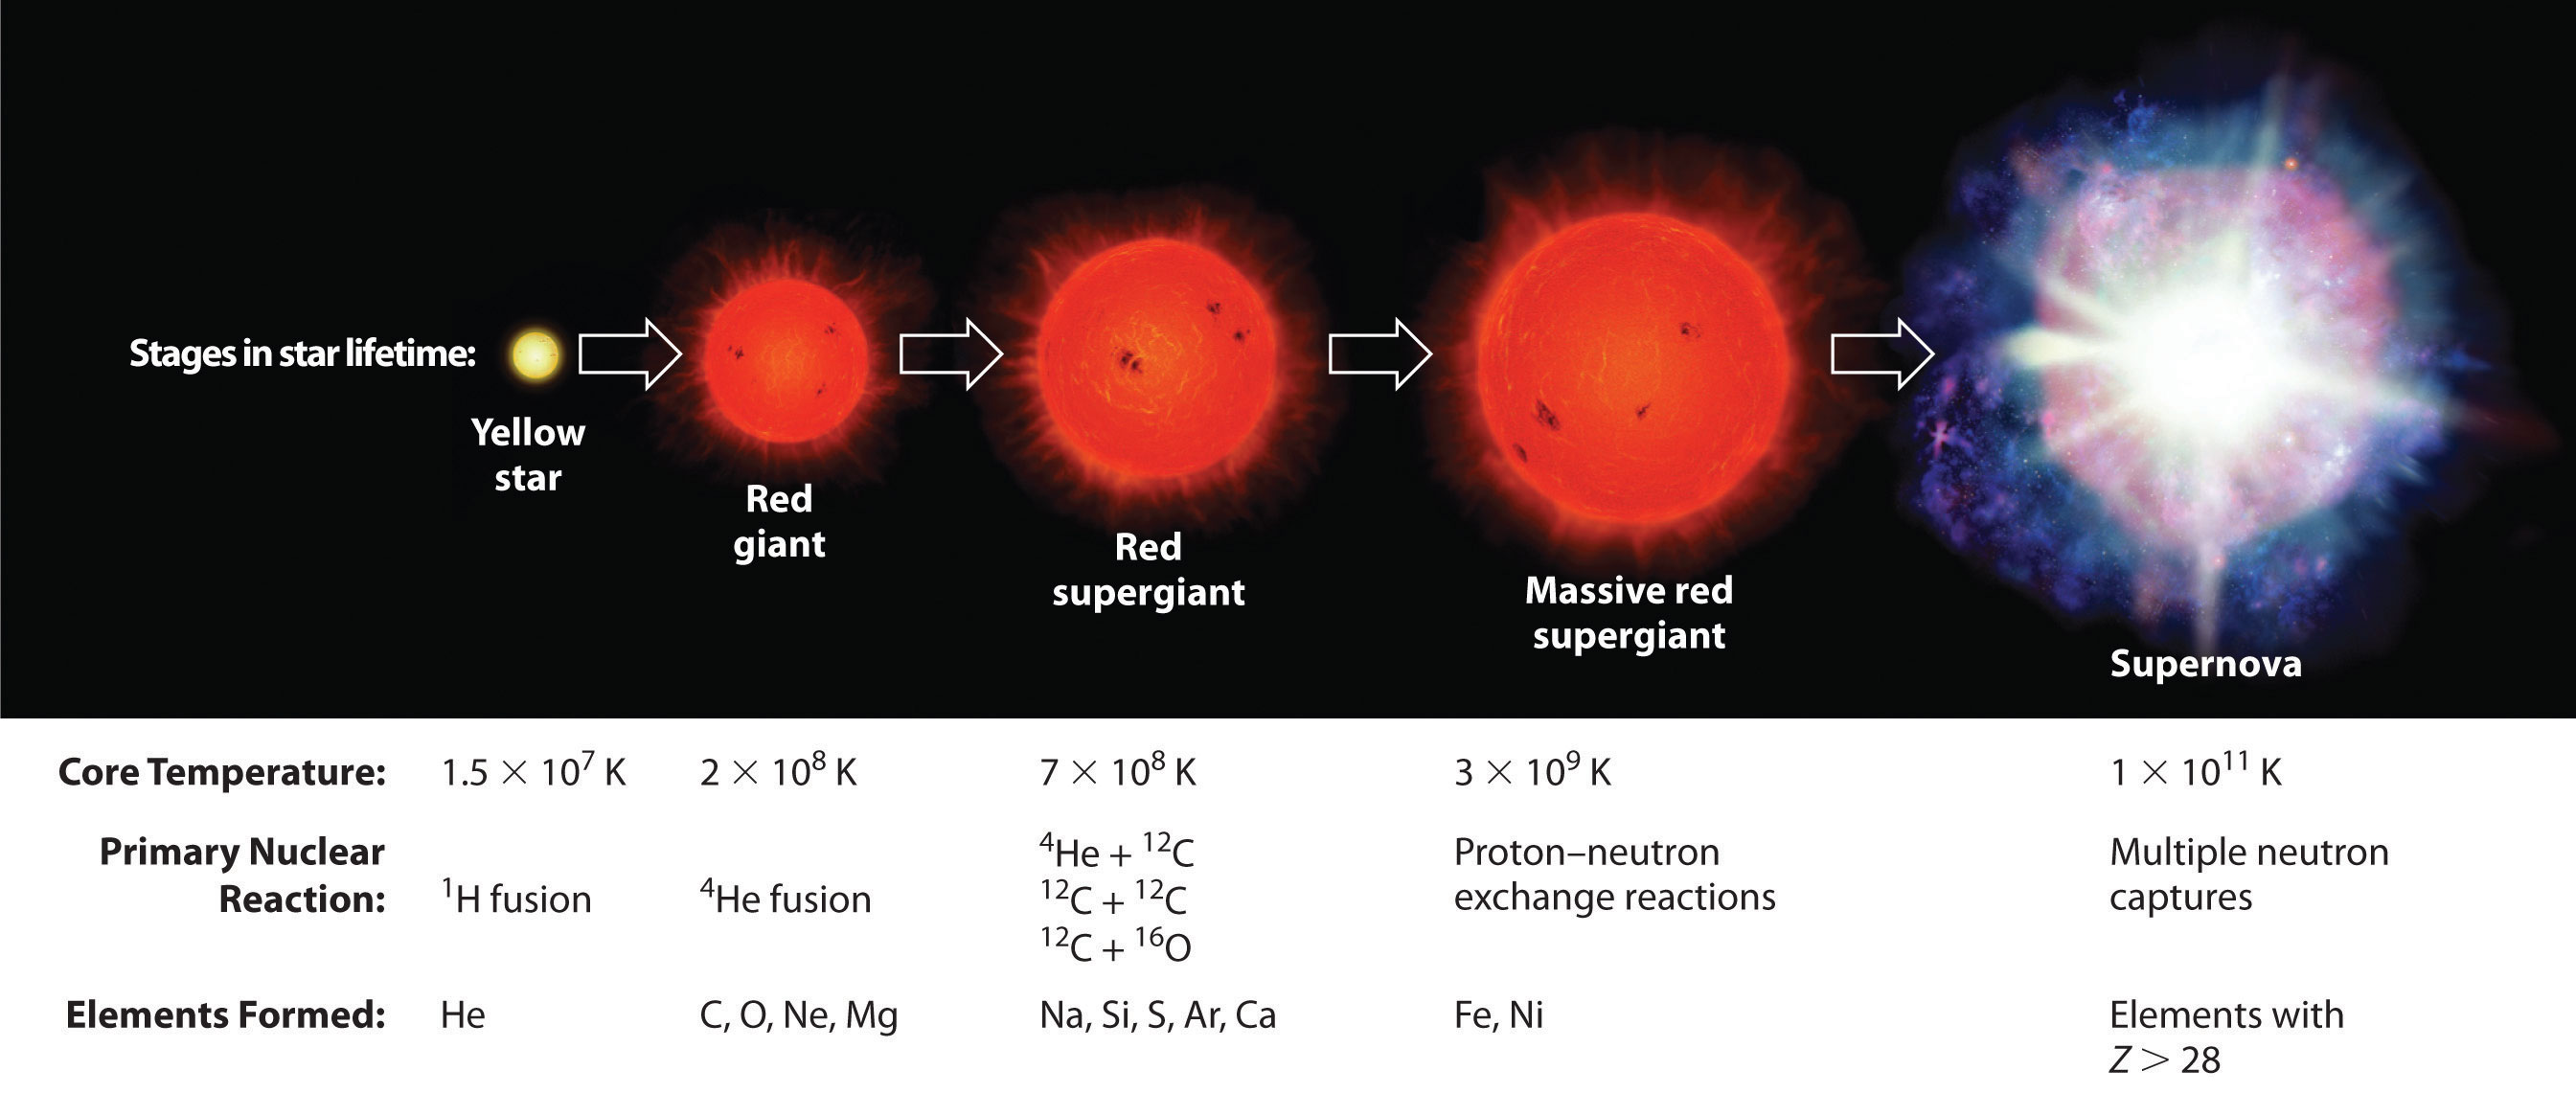 red giant star life cycle - photo #9